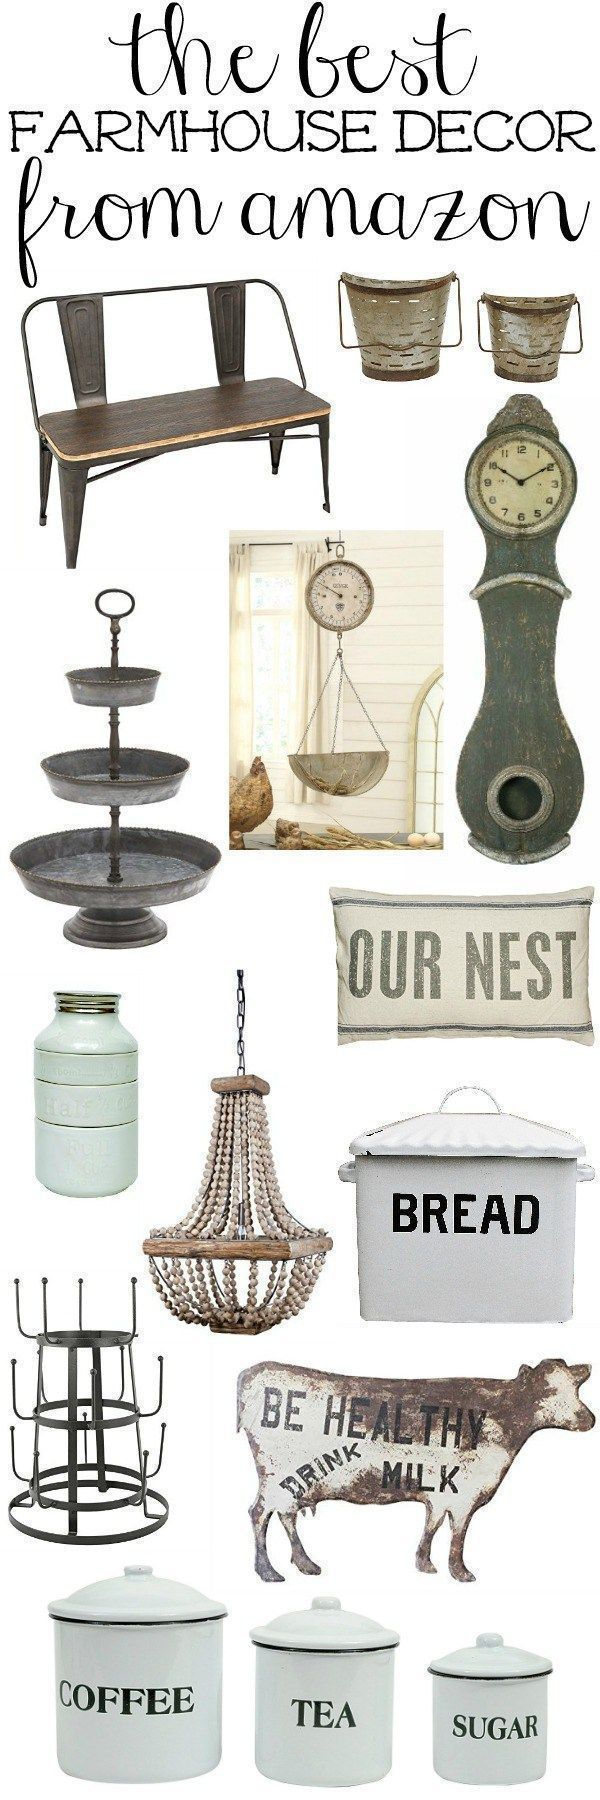 Ideas About Country Homes Decor On Pinterest Country Homes With Ideas